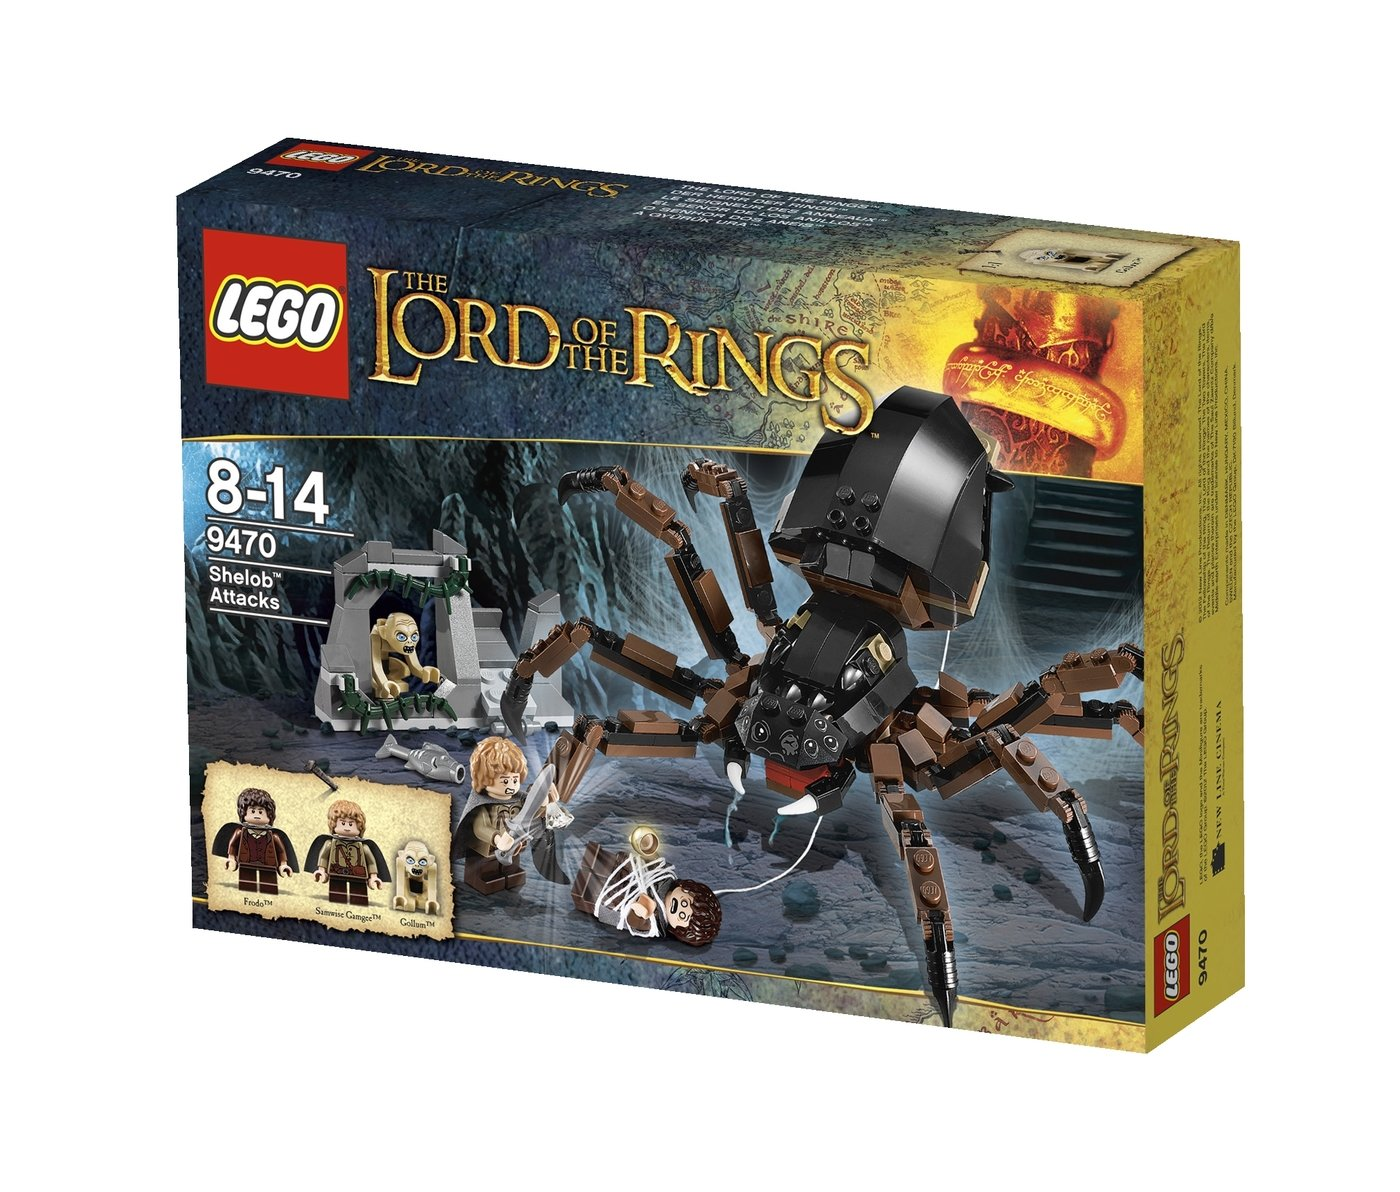 Lego Sets By Nicholas Groves At Skeleton Tower 7093 9470 Shelob Attacks